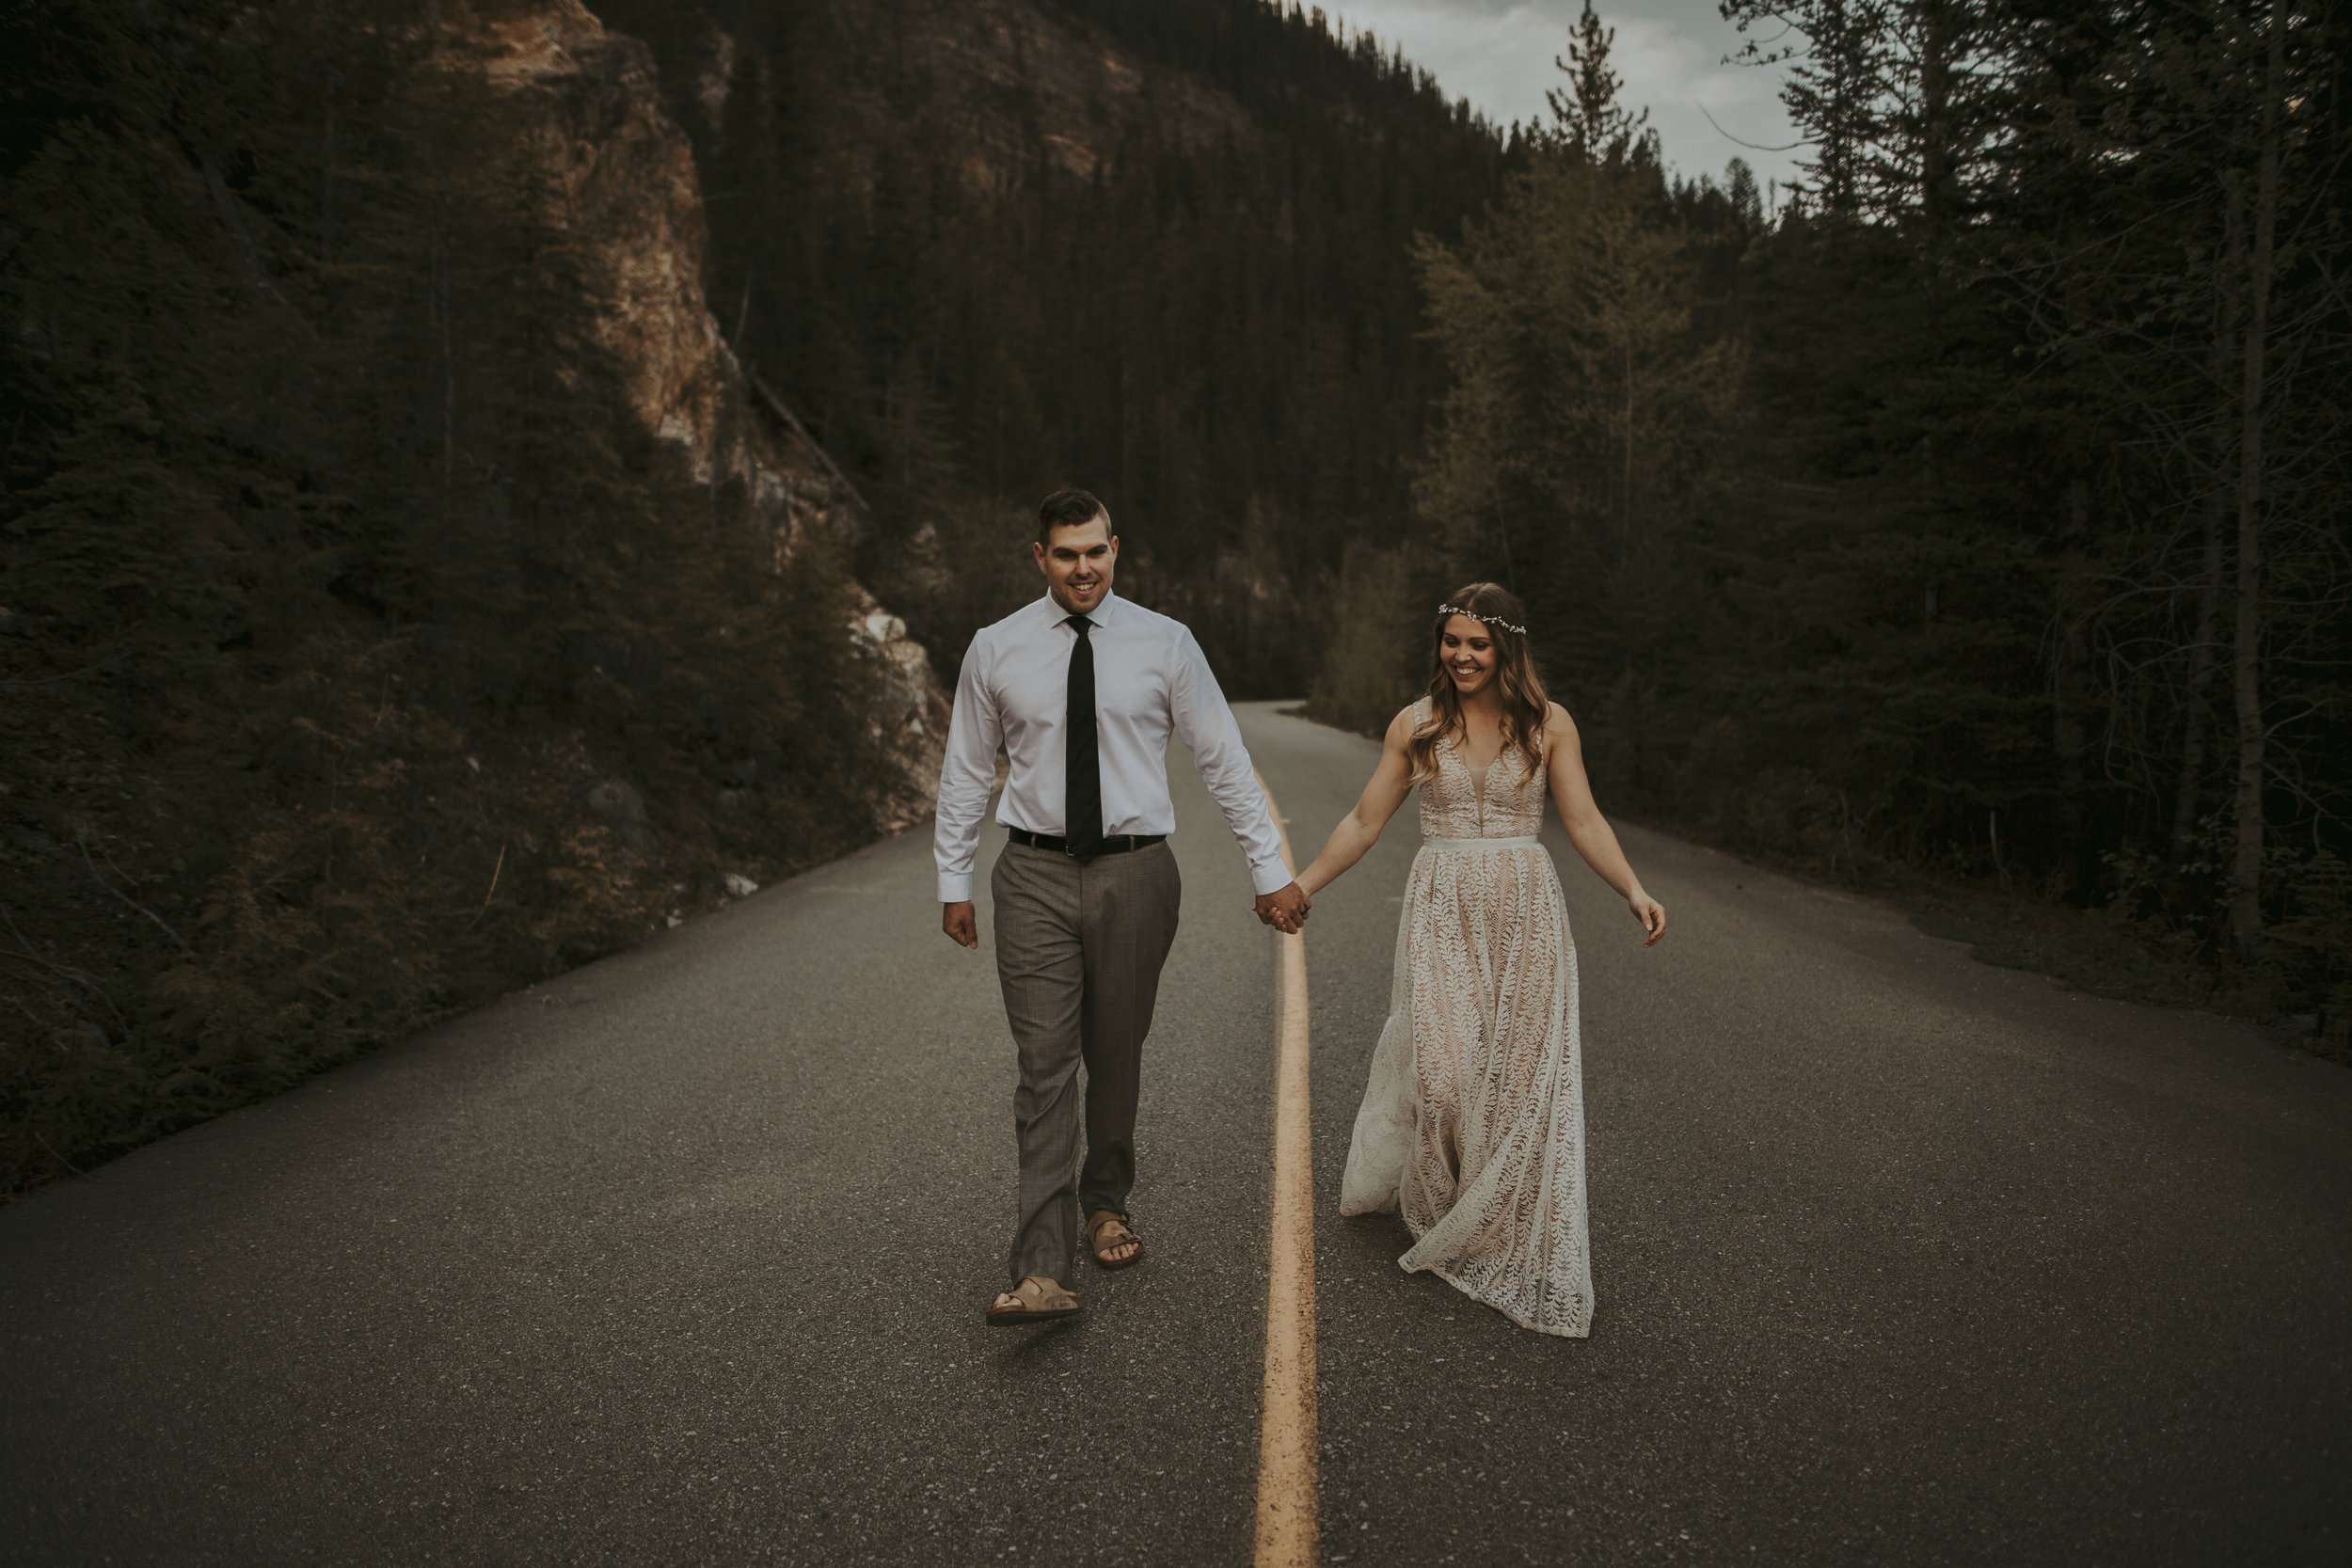 Emerald Lake Elopement, Emerald Lake Lodge Photographer, Banff Elopement Photographer, Banff Photographer, Banff Elopement